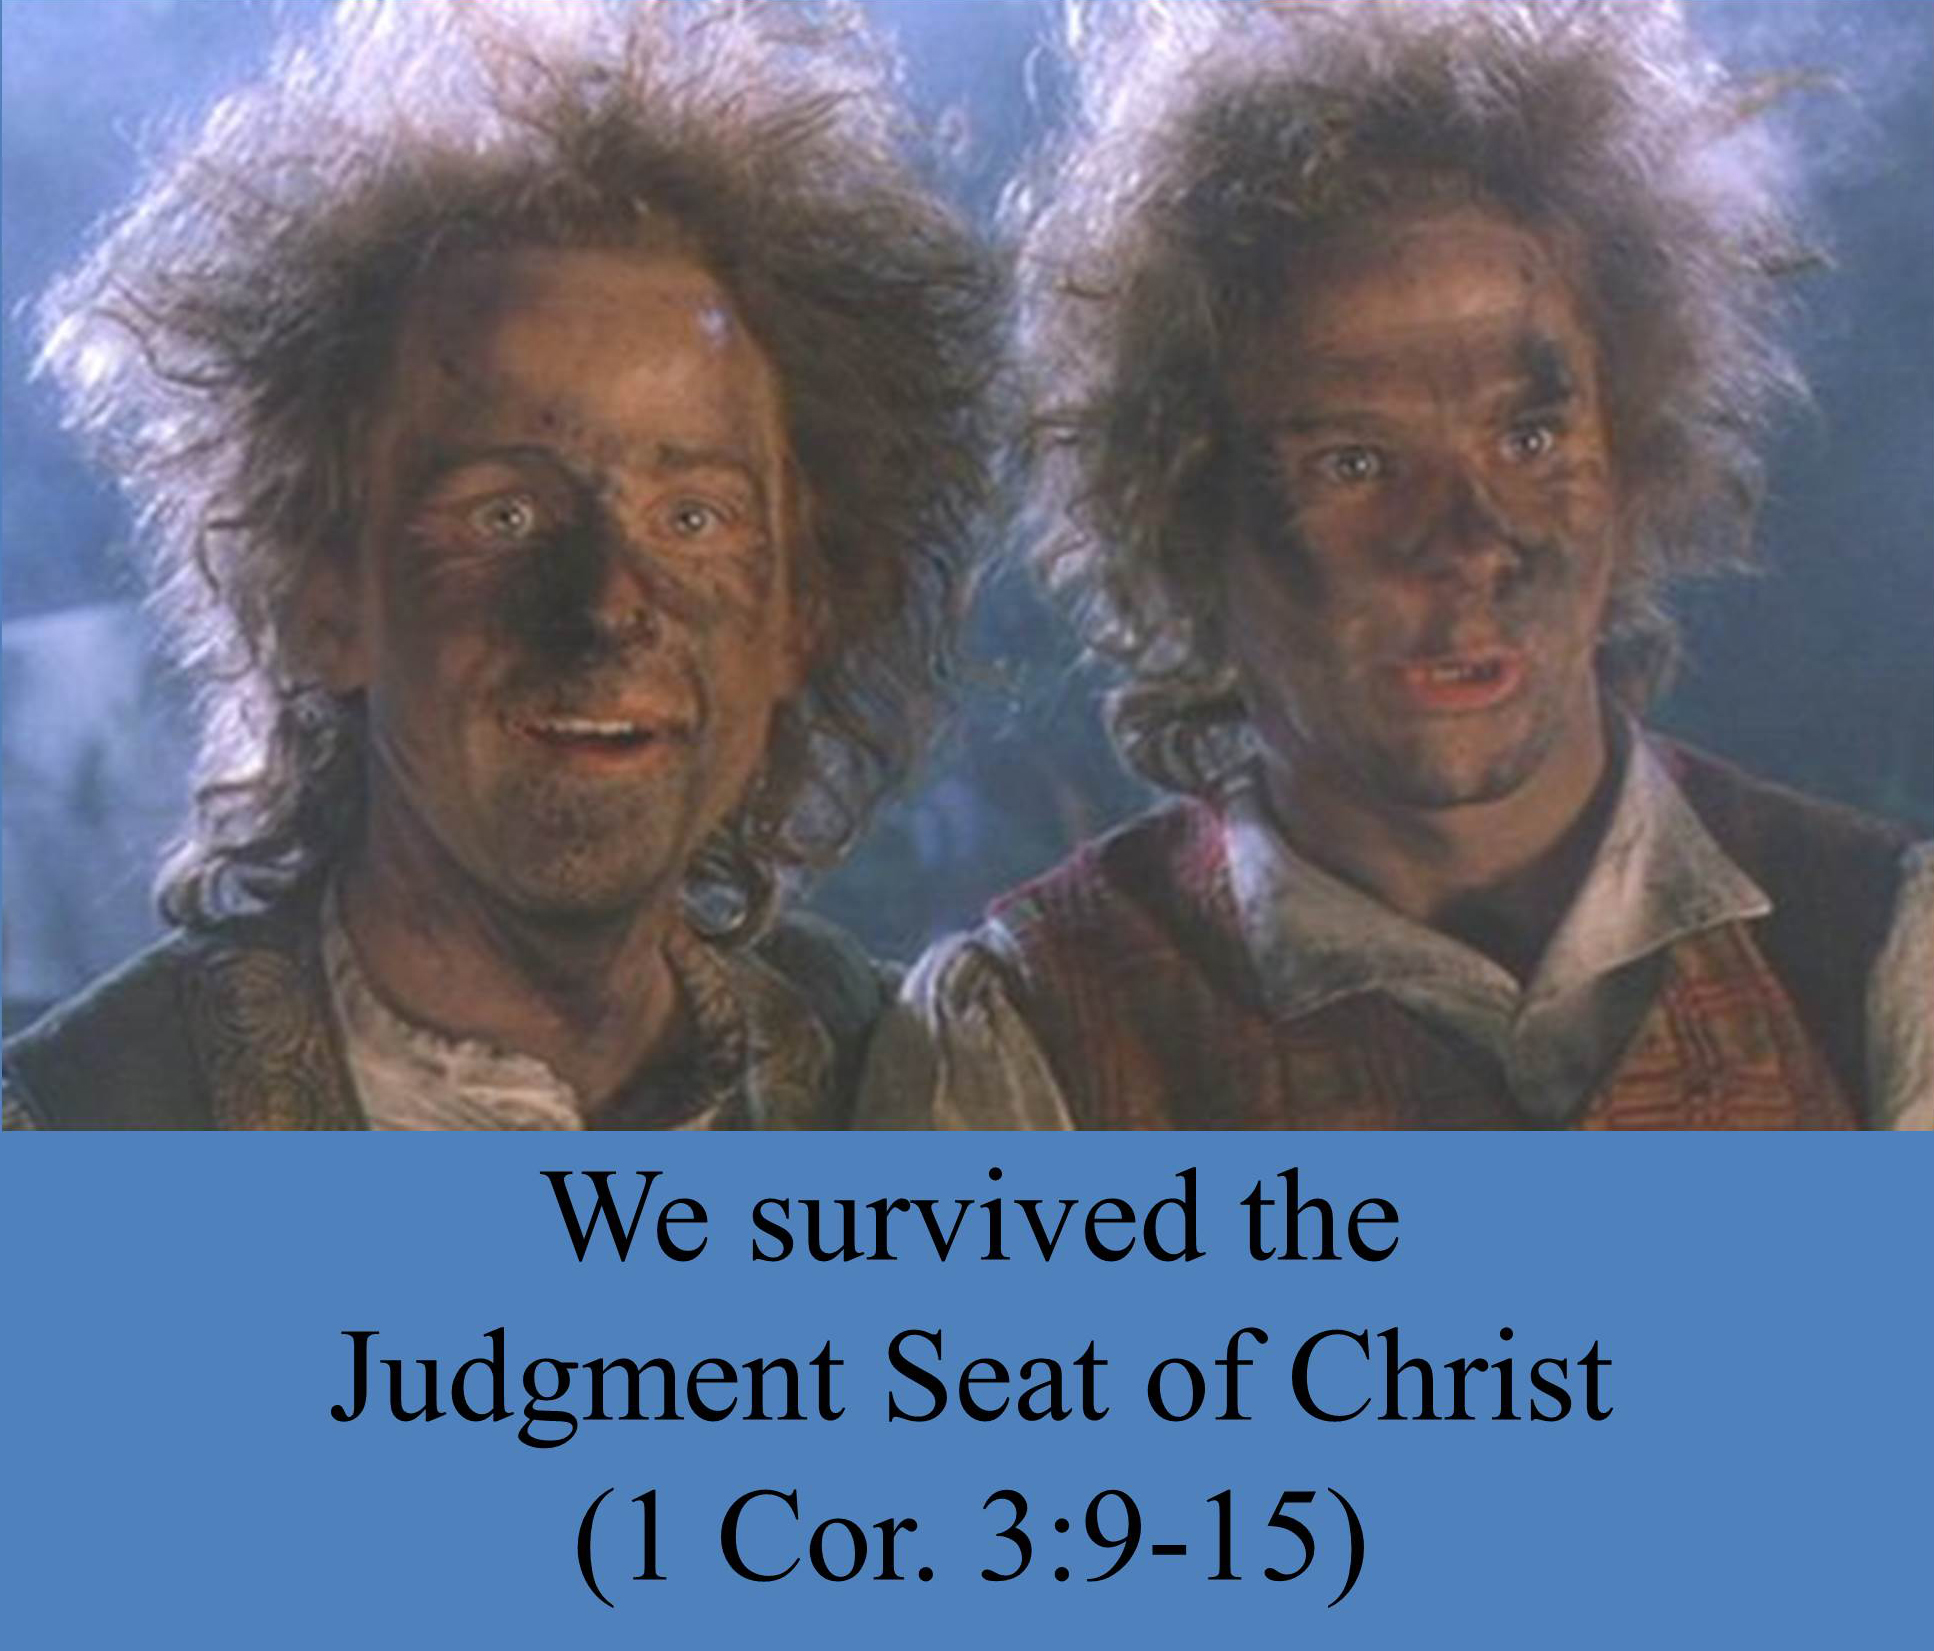 We survived the Judgment Seat of Christ